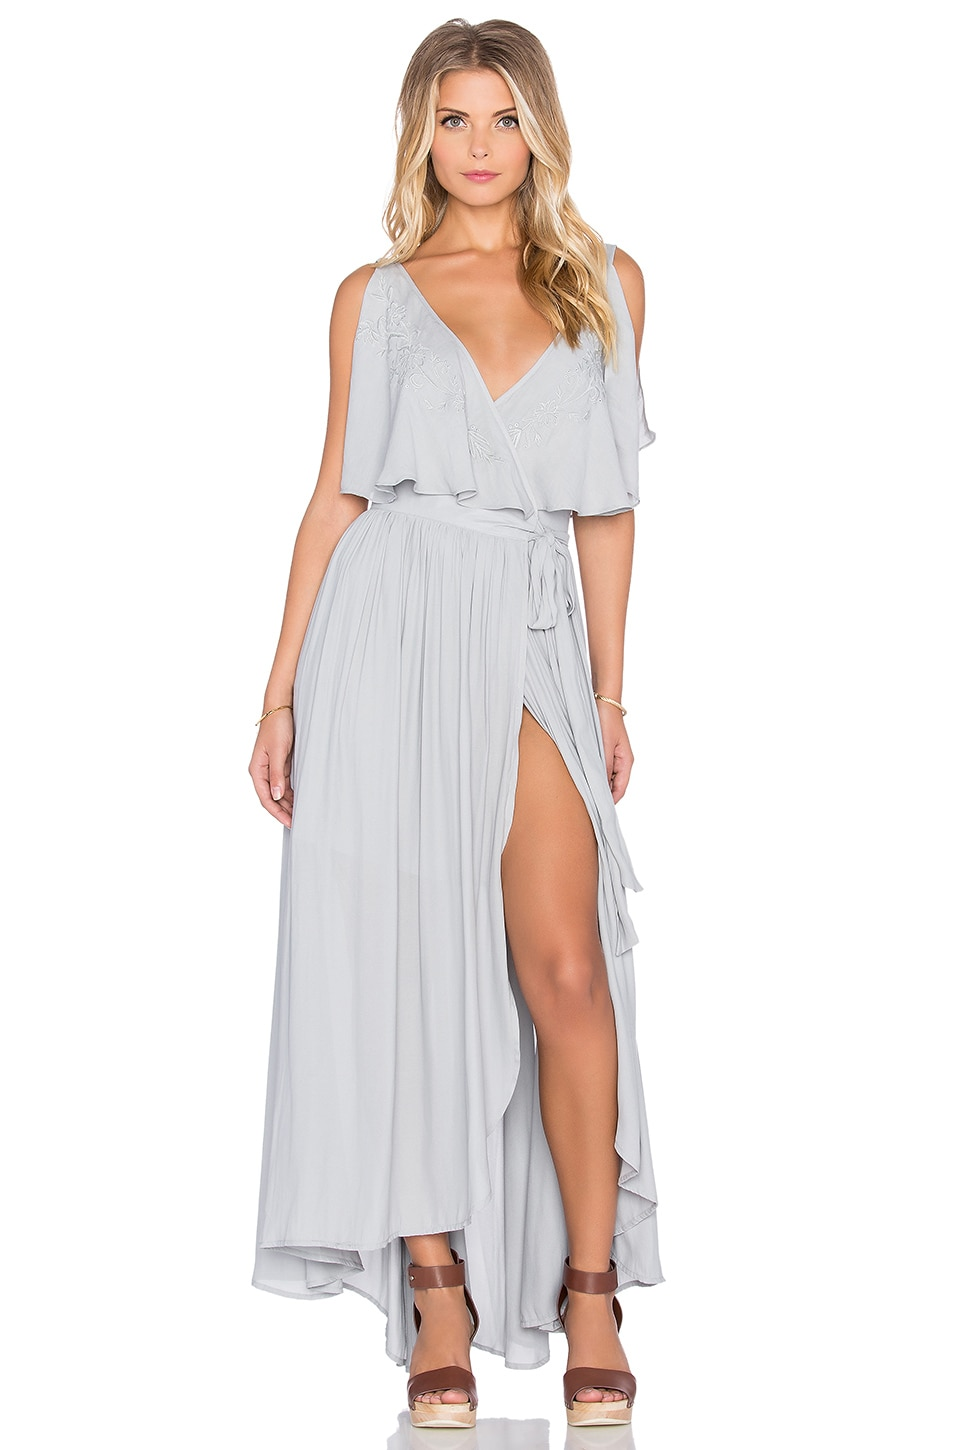 Free People Fiona's Sleeveless Maxi Dress in Rain Blue | REVOLVE